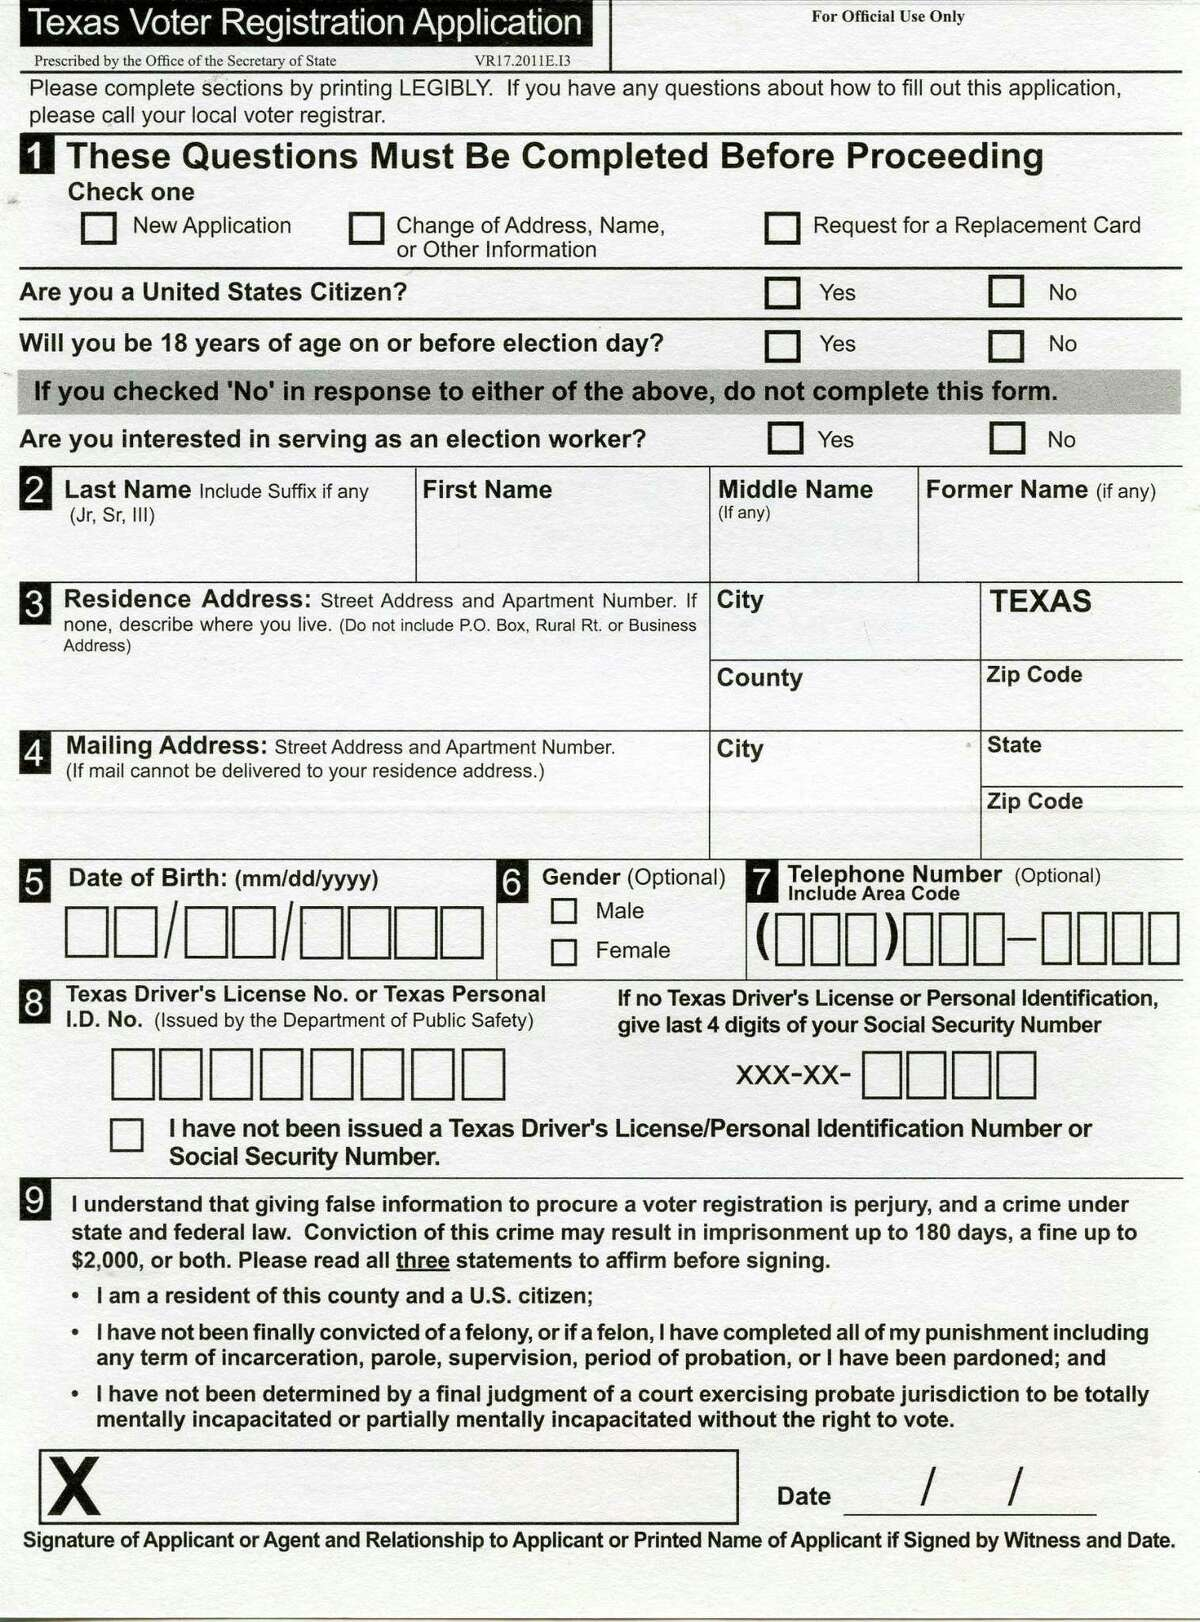 A Texas Voter Registration Application from the Texas Secretary of State.State officials say the applications submitted by the group Vote.org do not comply with Texas law.